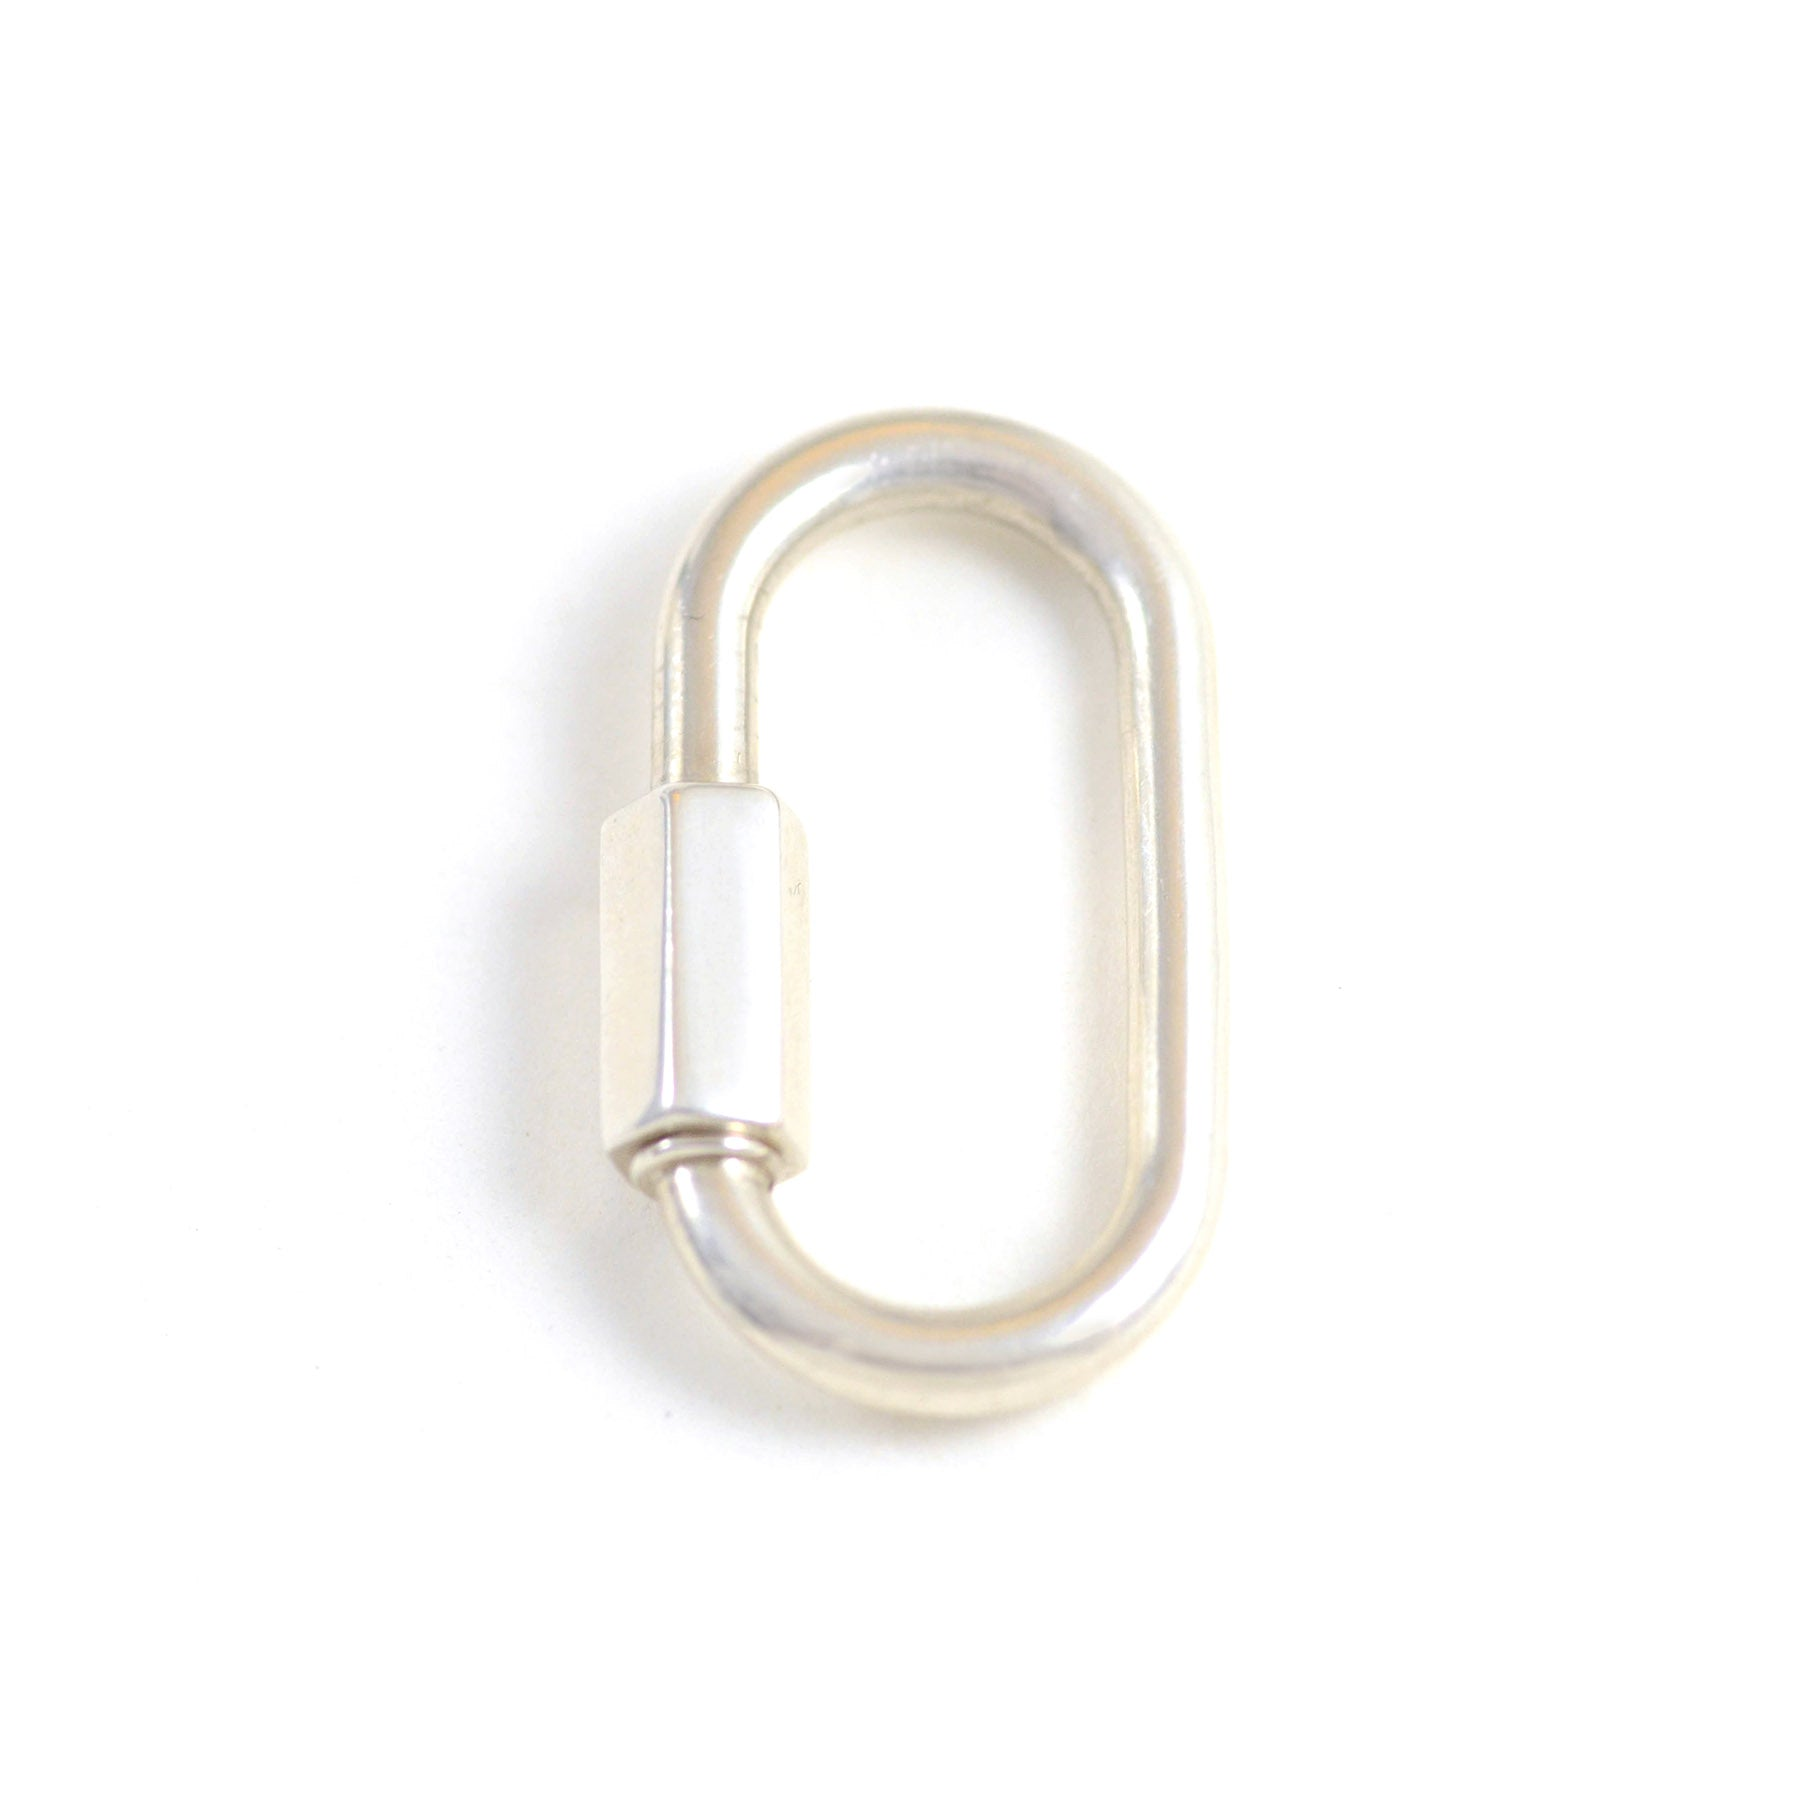 Regular Lock in Sterling Silver